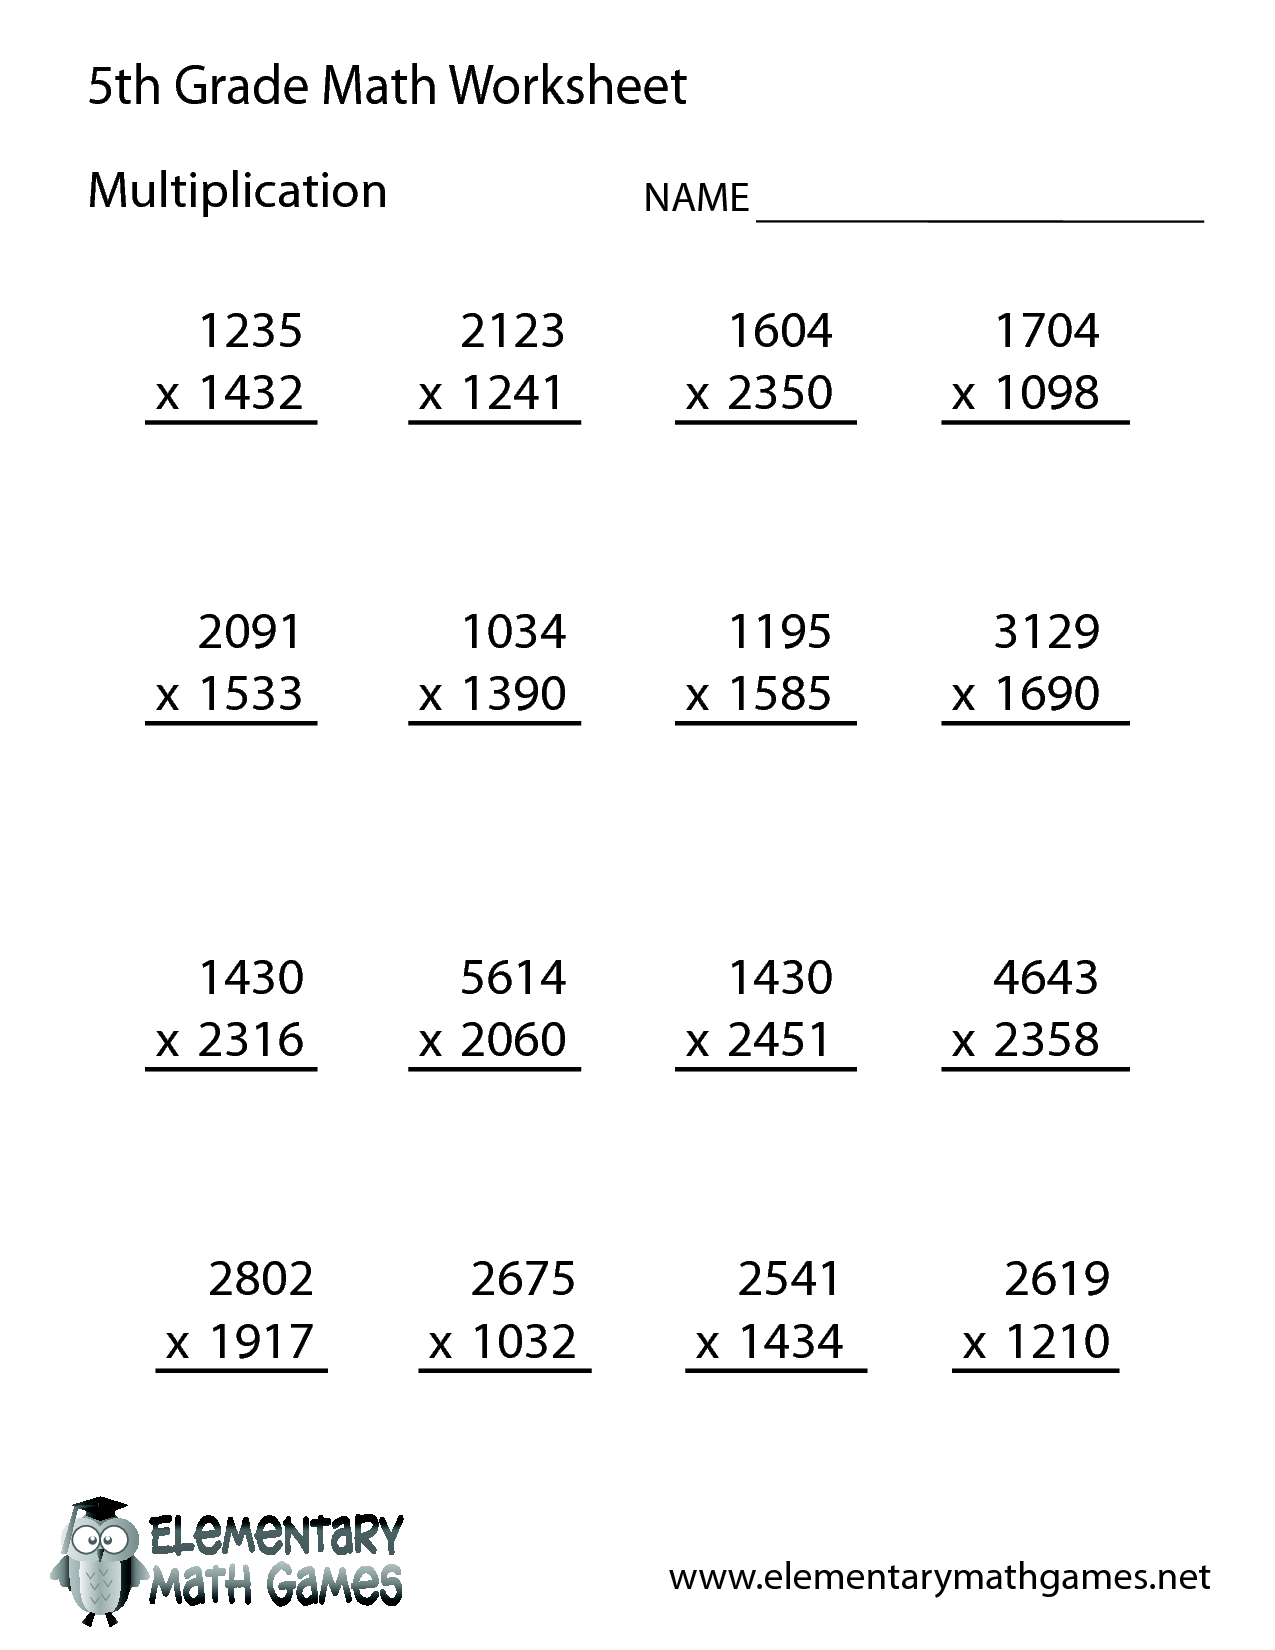 Worksheet Grade 5 Multiplication 1000 images about javales math worksheets on pinterest multiplication problems and multiplication